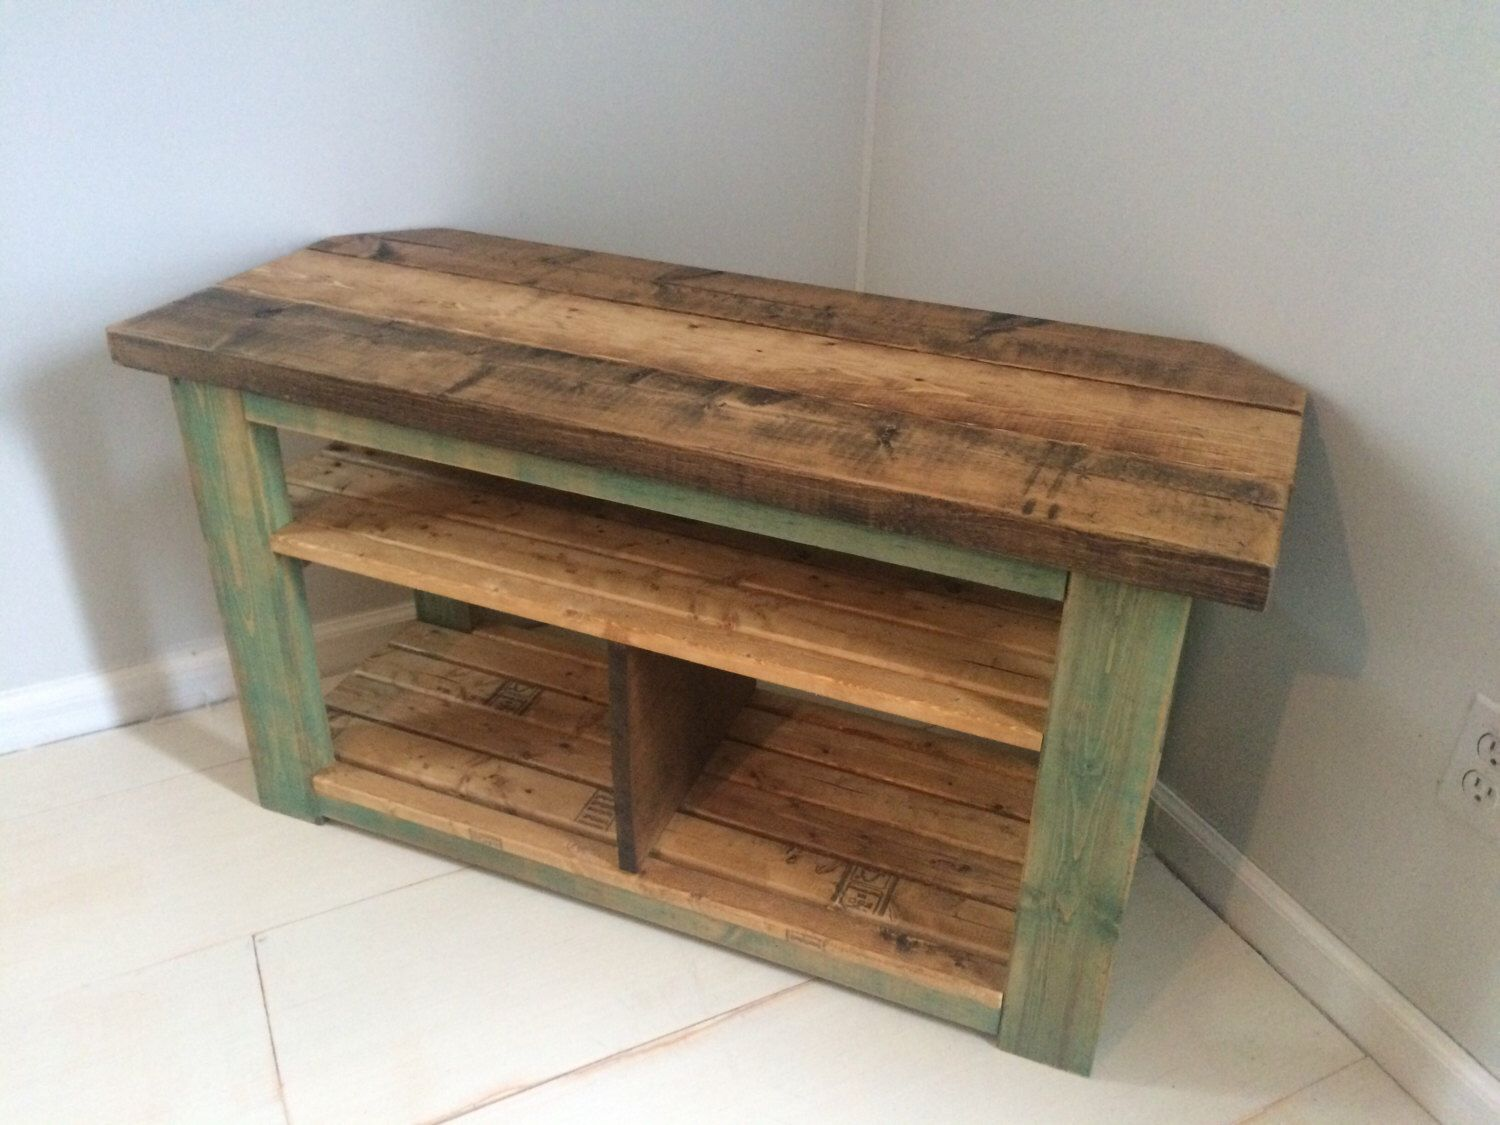 Rustic Corner TV Wood Stand/Console Teal Distressed